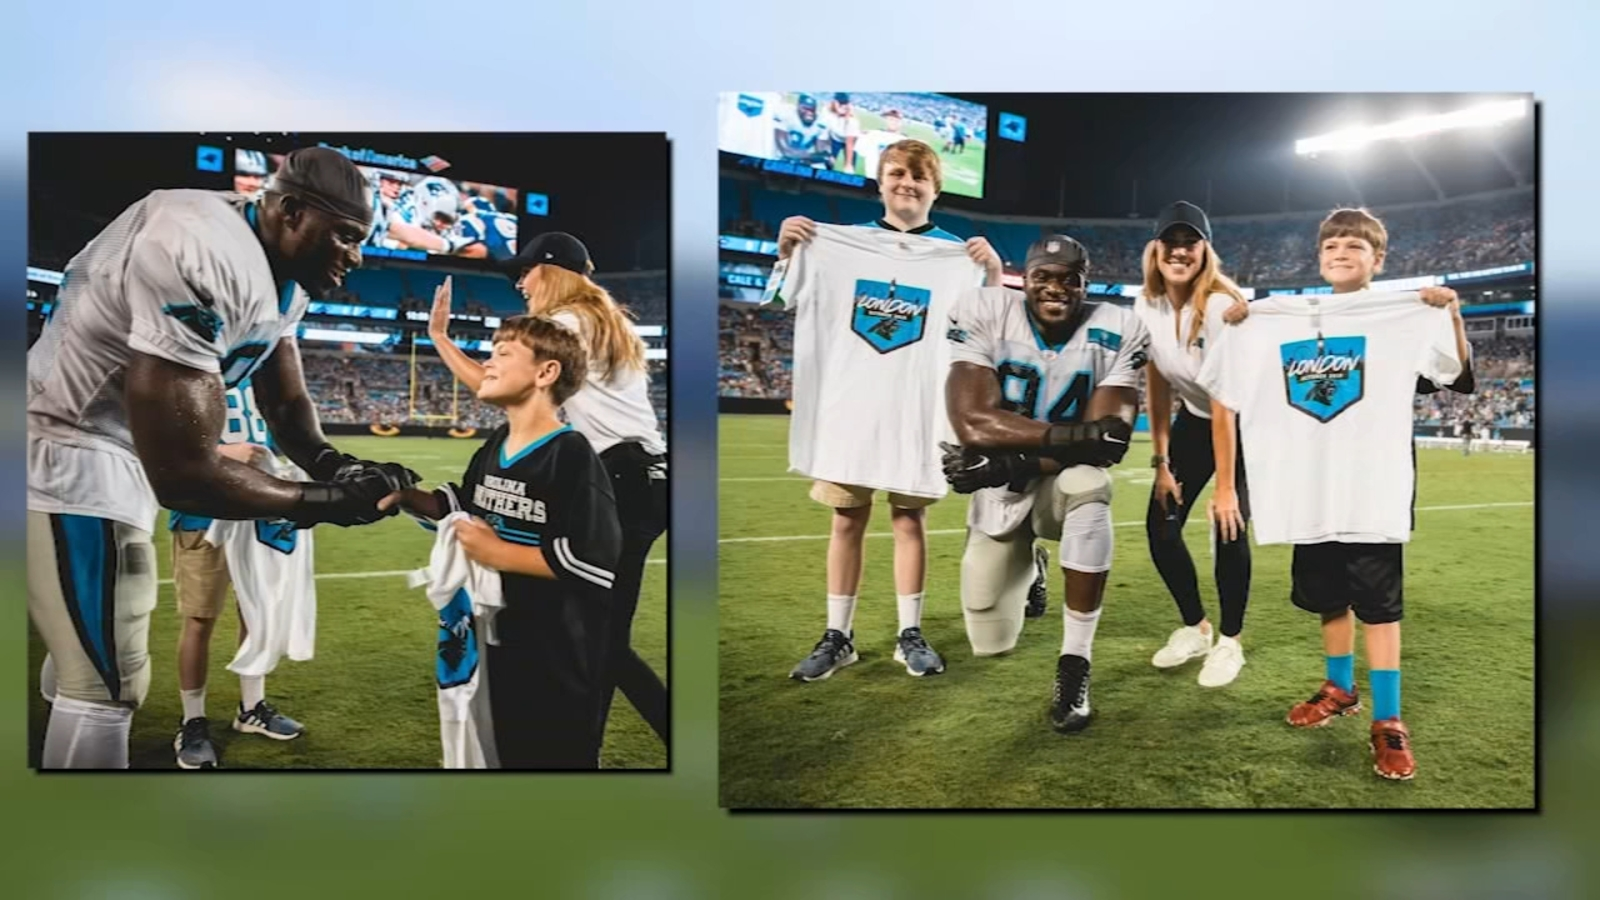 Carolina Panthers make 2 young fans wishes come true in London